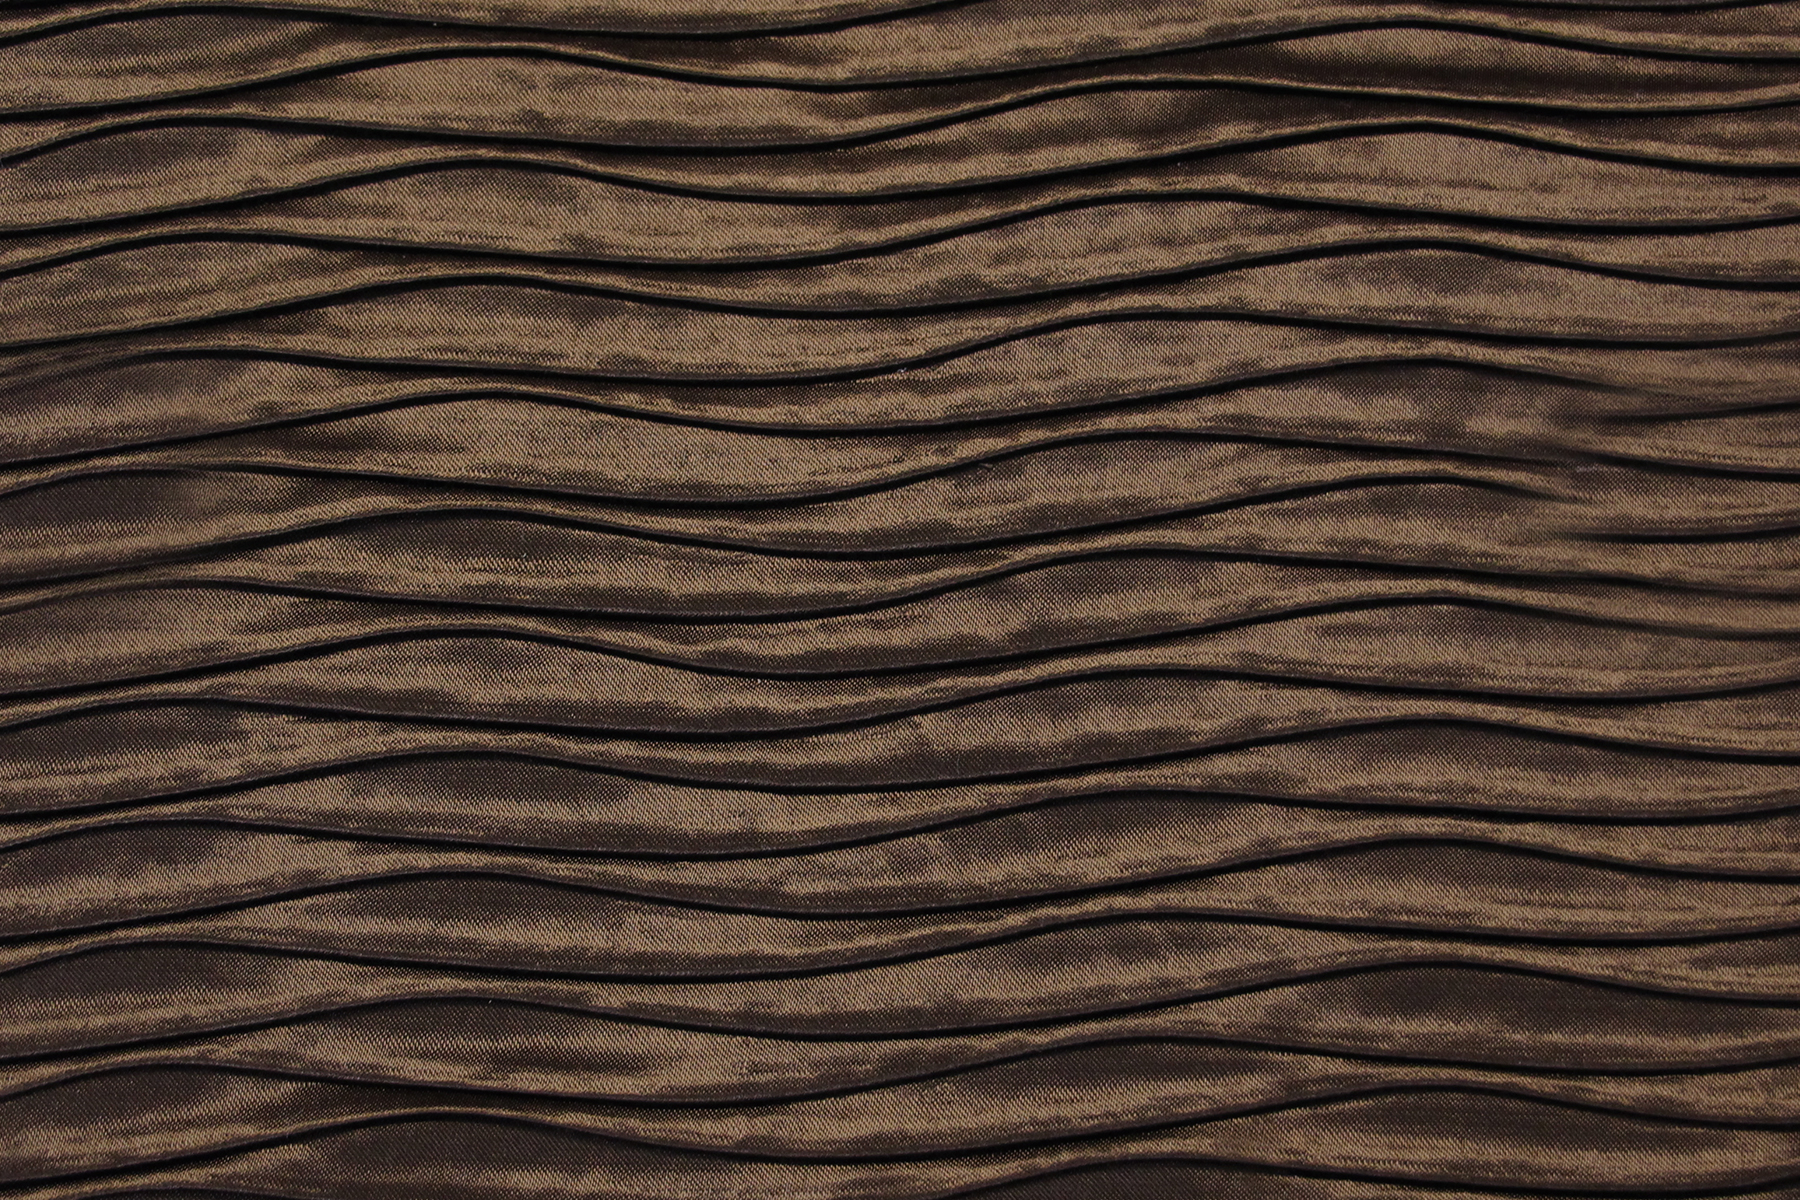 ROUCHED COCOA BROWN Fabric by KOKET